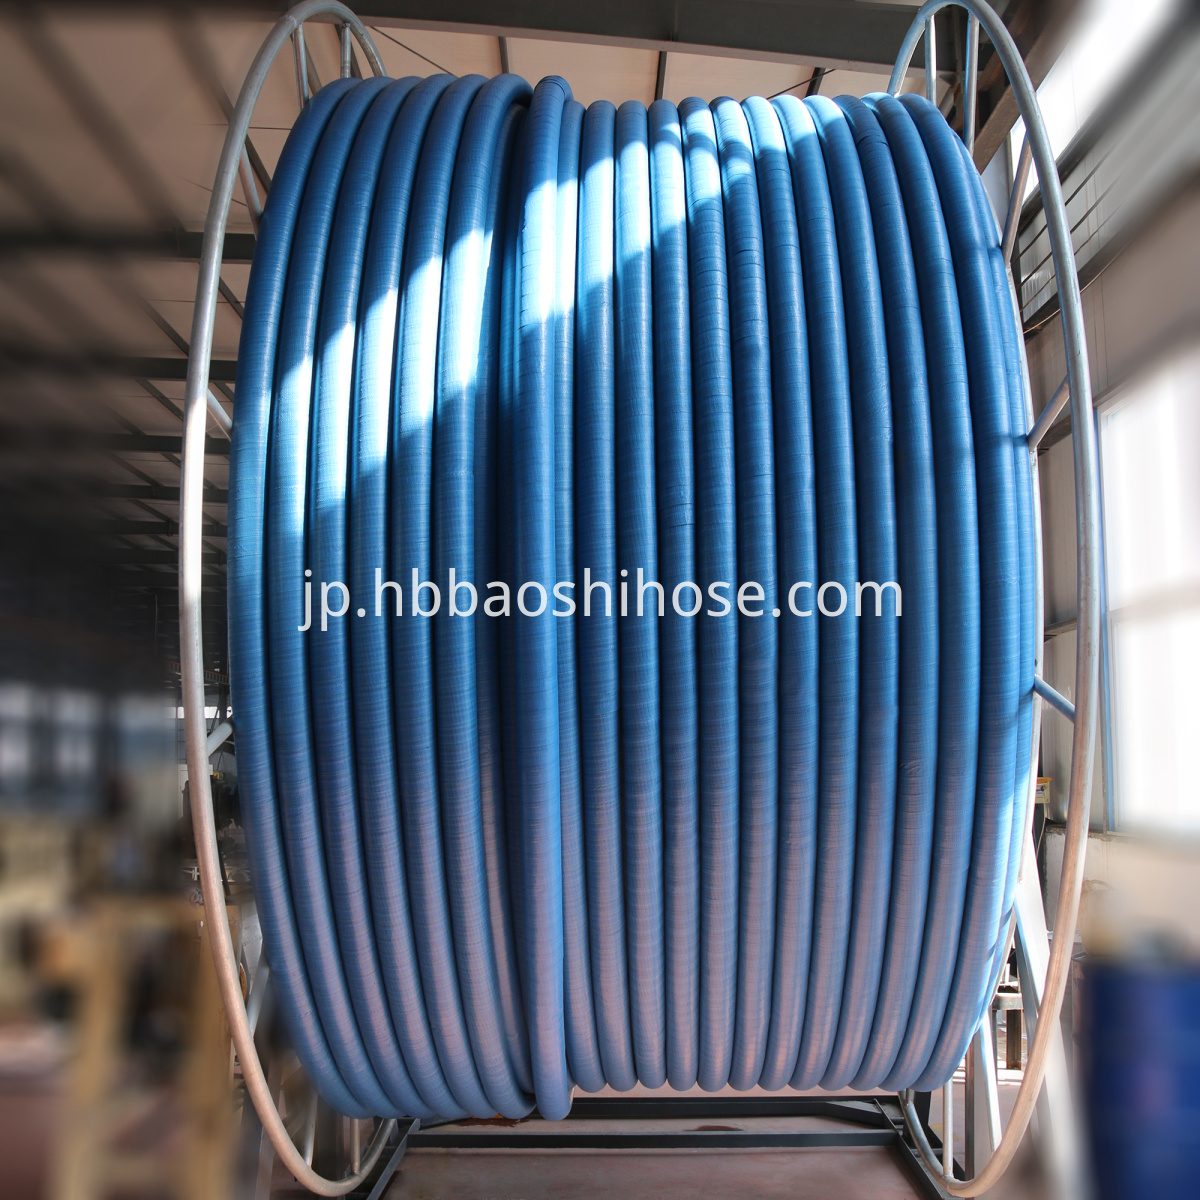 Flexible Gas Tube